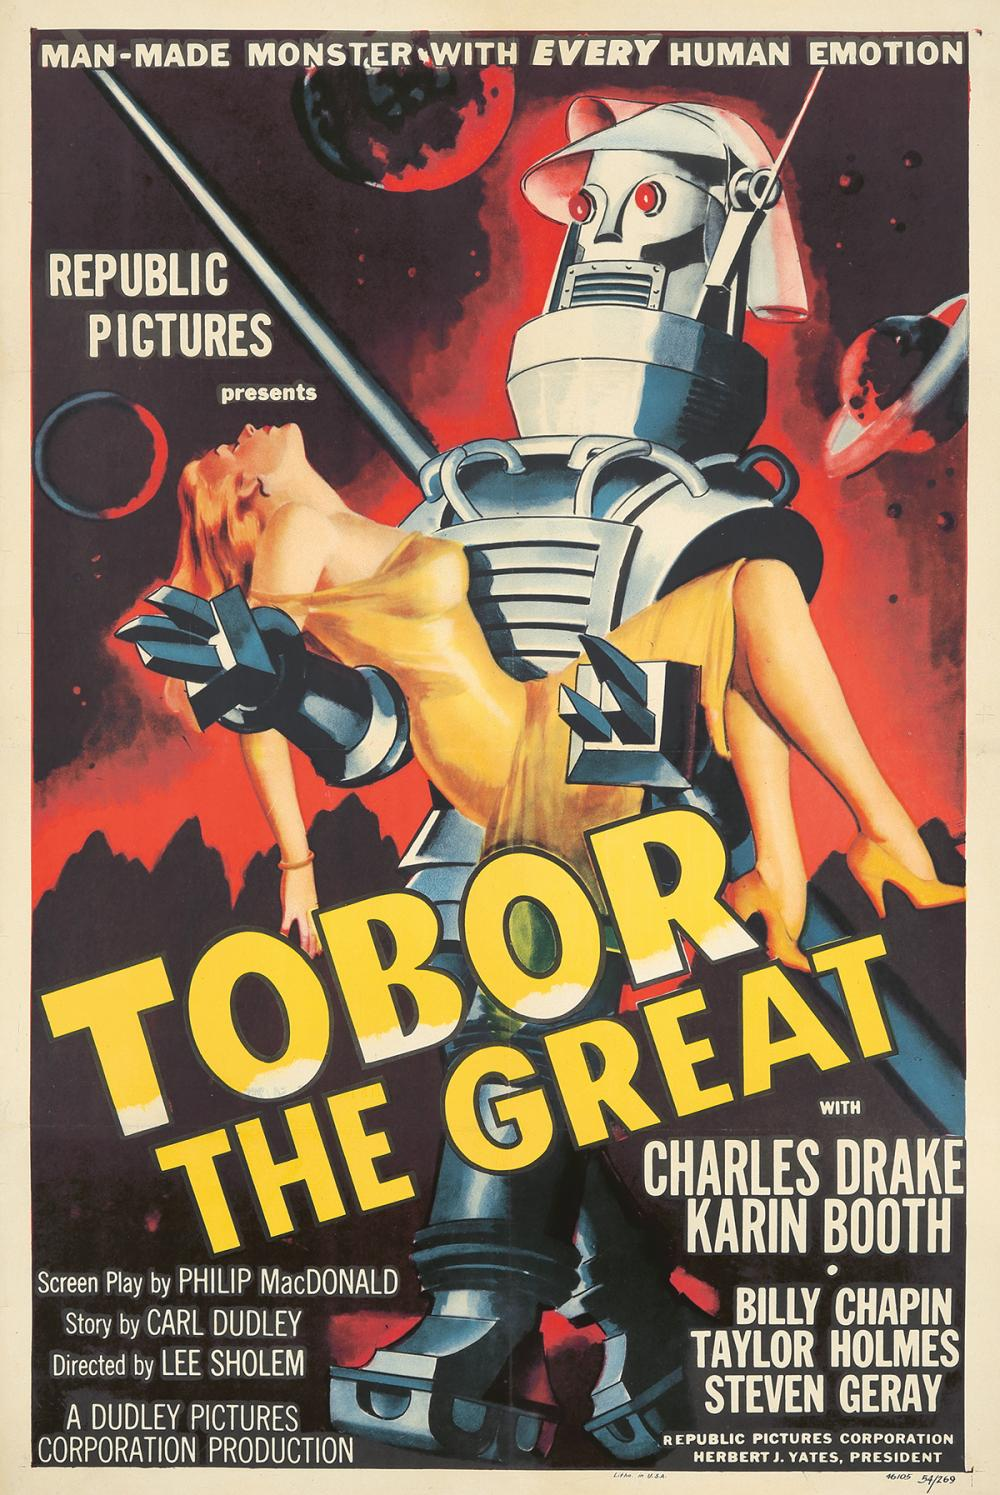 Tobor the Great. 1954.